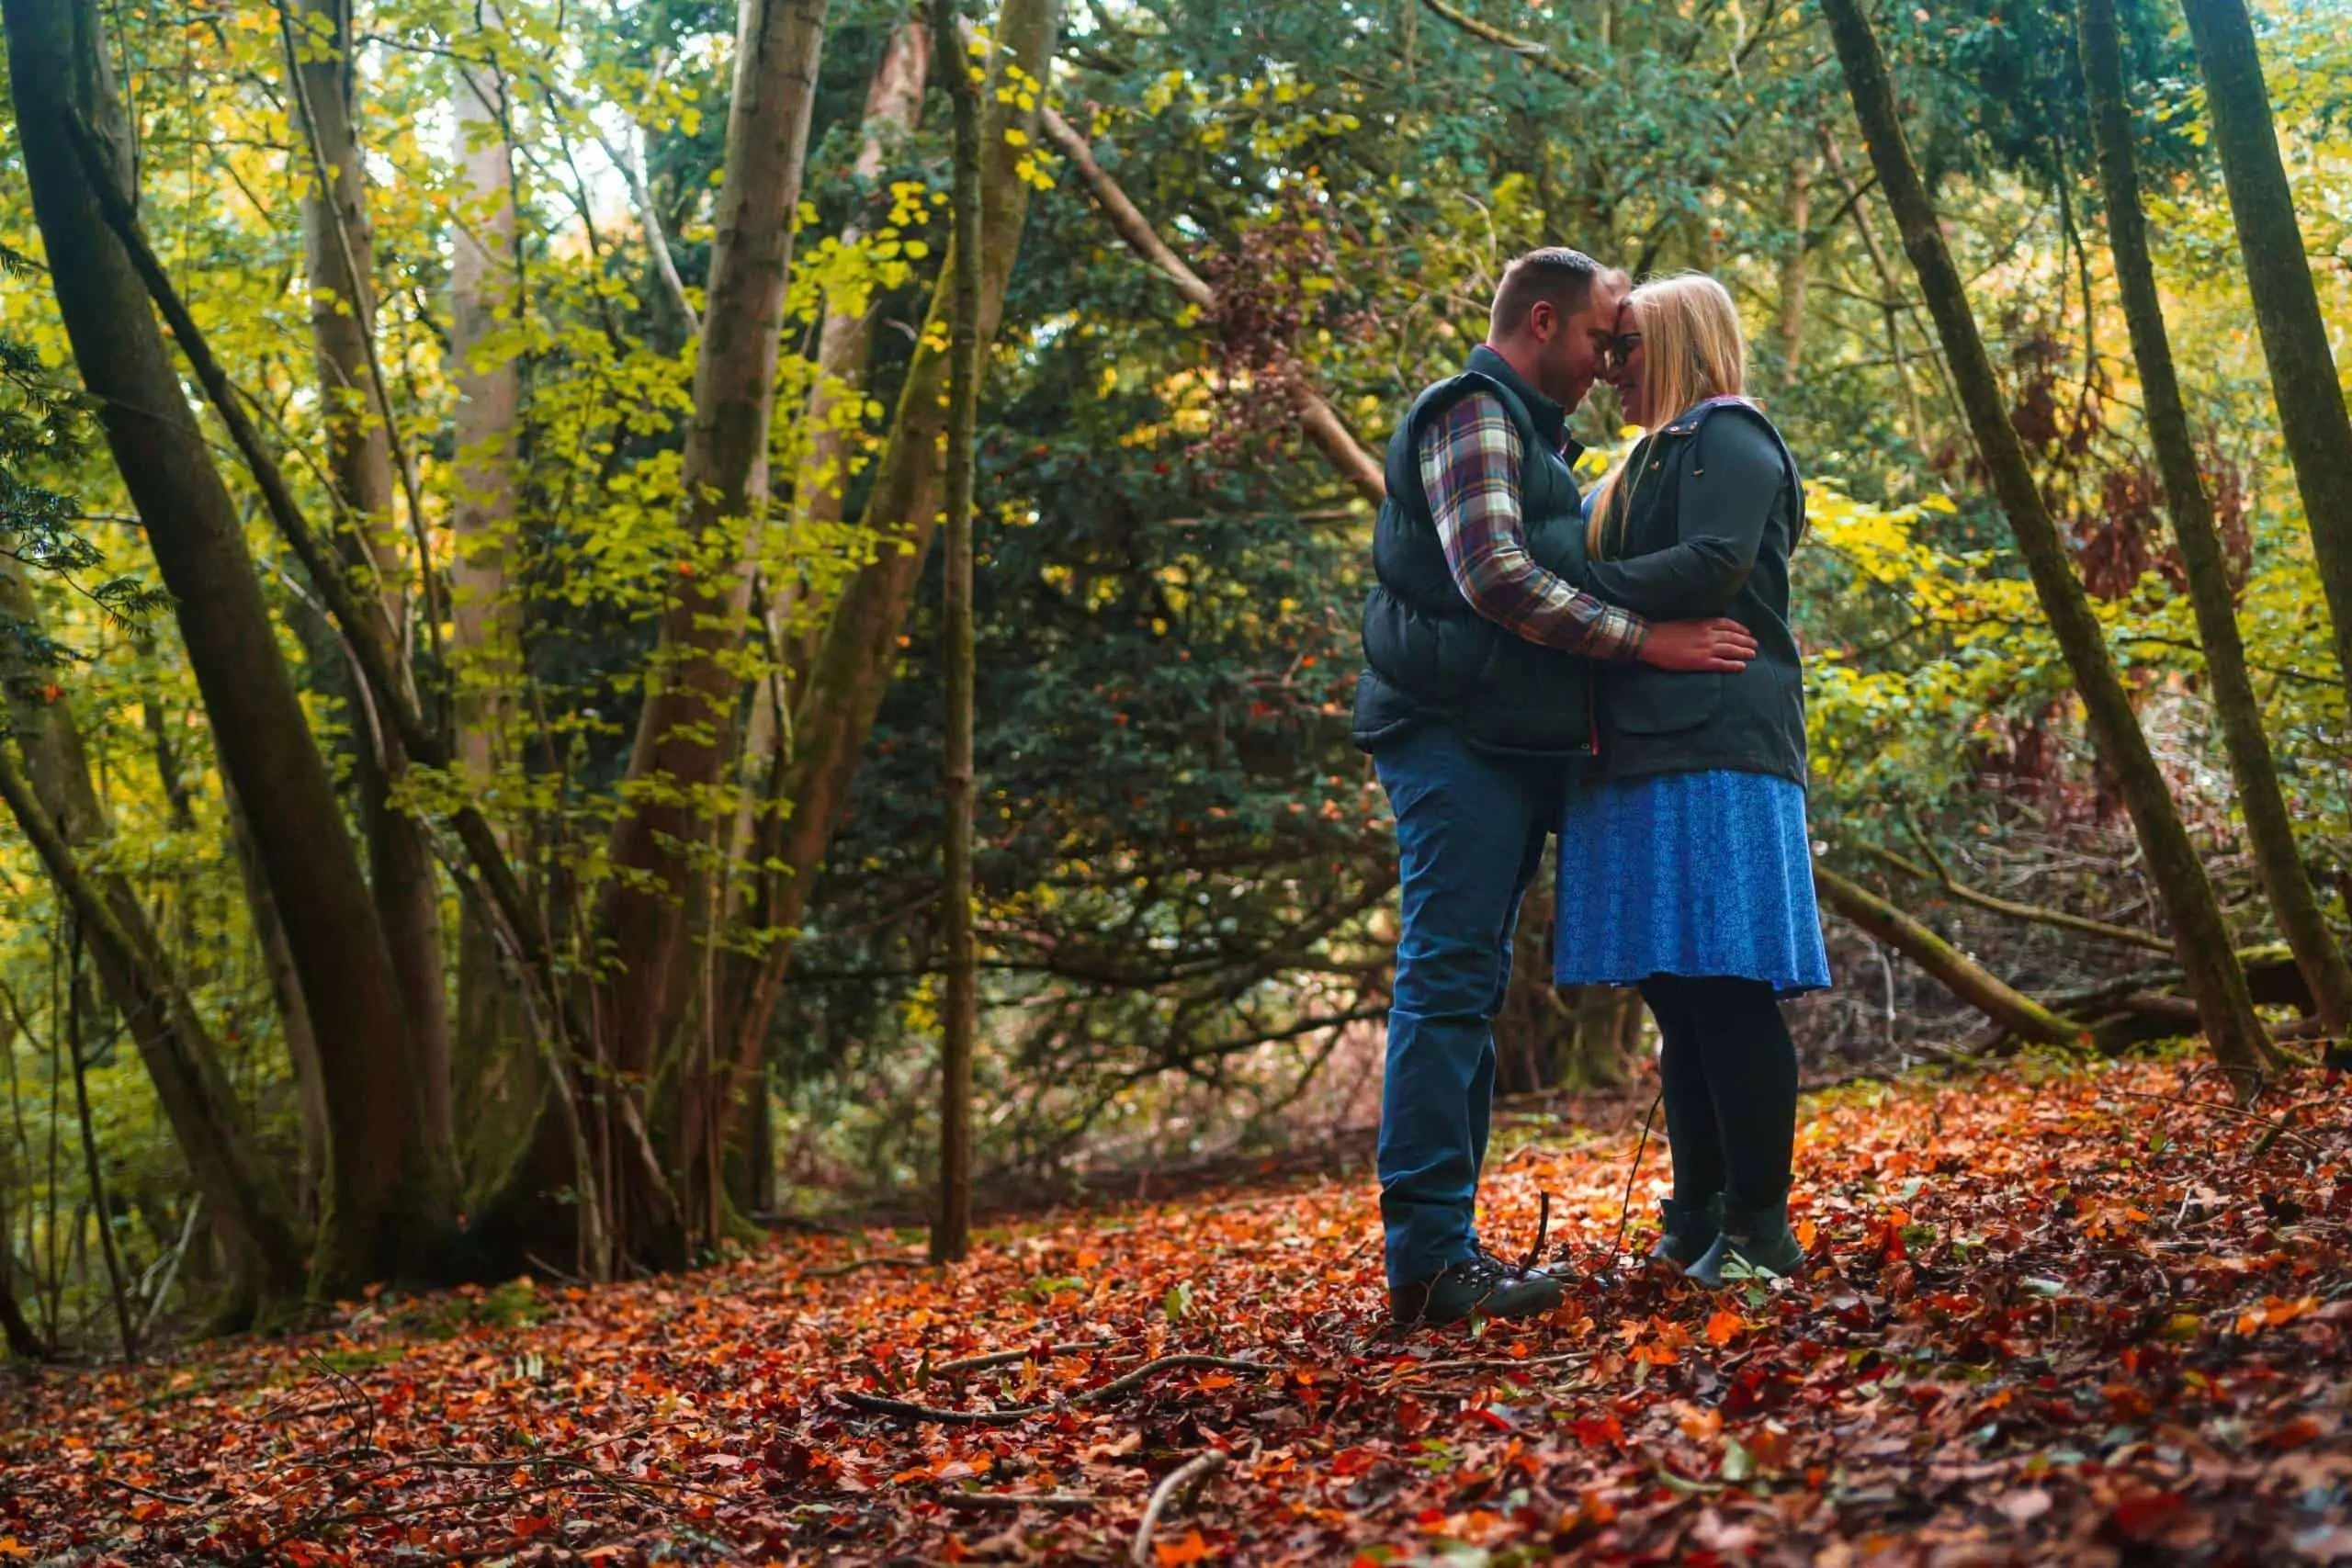 An engaged couple share an embrace in woodlands